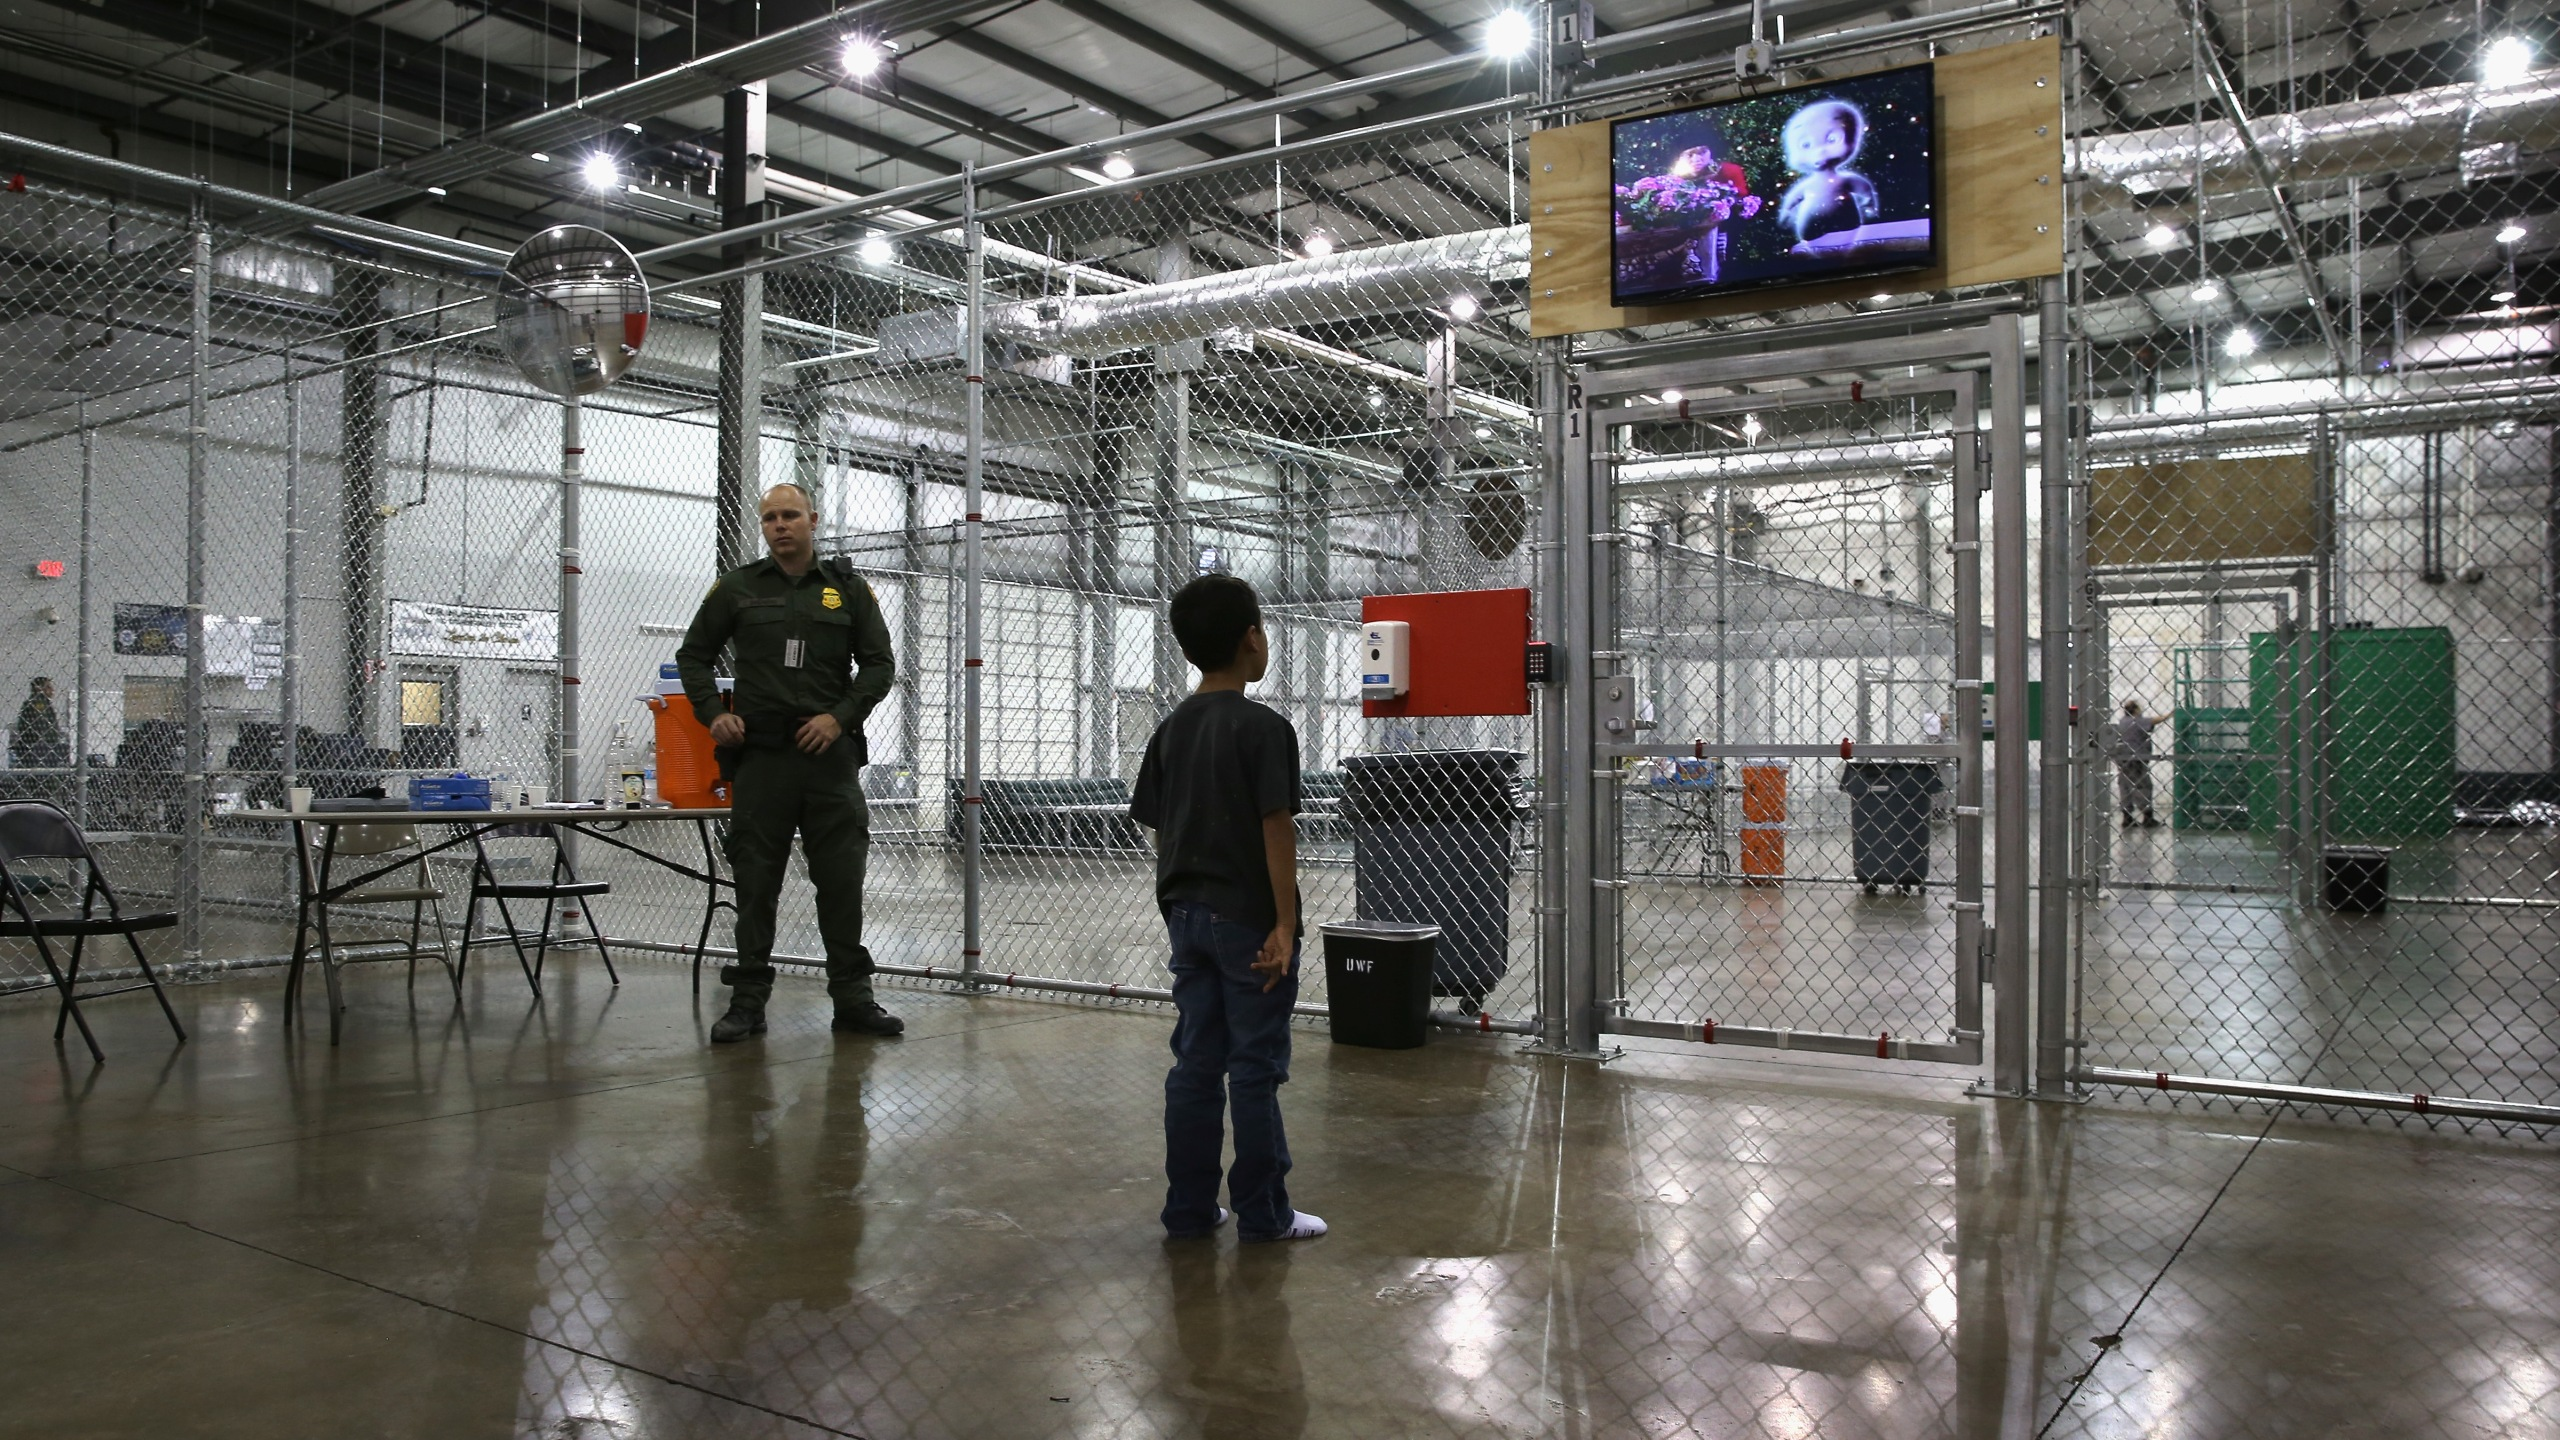 A boy from Honduras watches a movie at a detention facility run by the U.S. Border Patrol on Sept. 8, 2014, in McAllen, Texas. (Credit: John Moore/Getty Images)